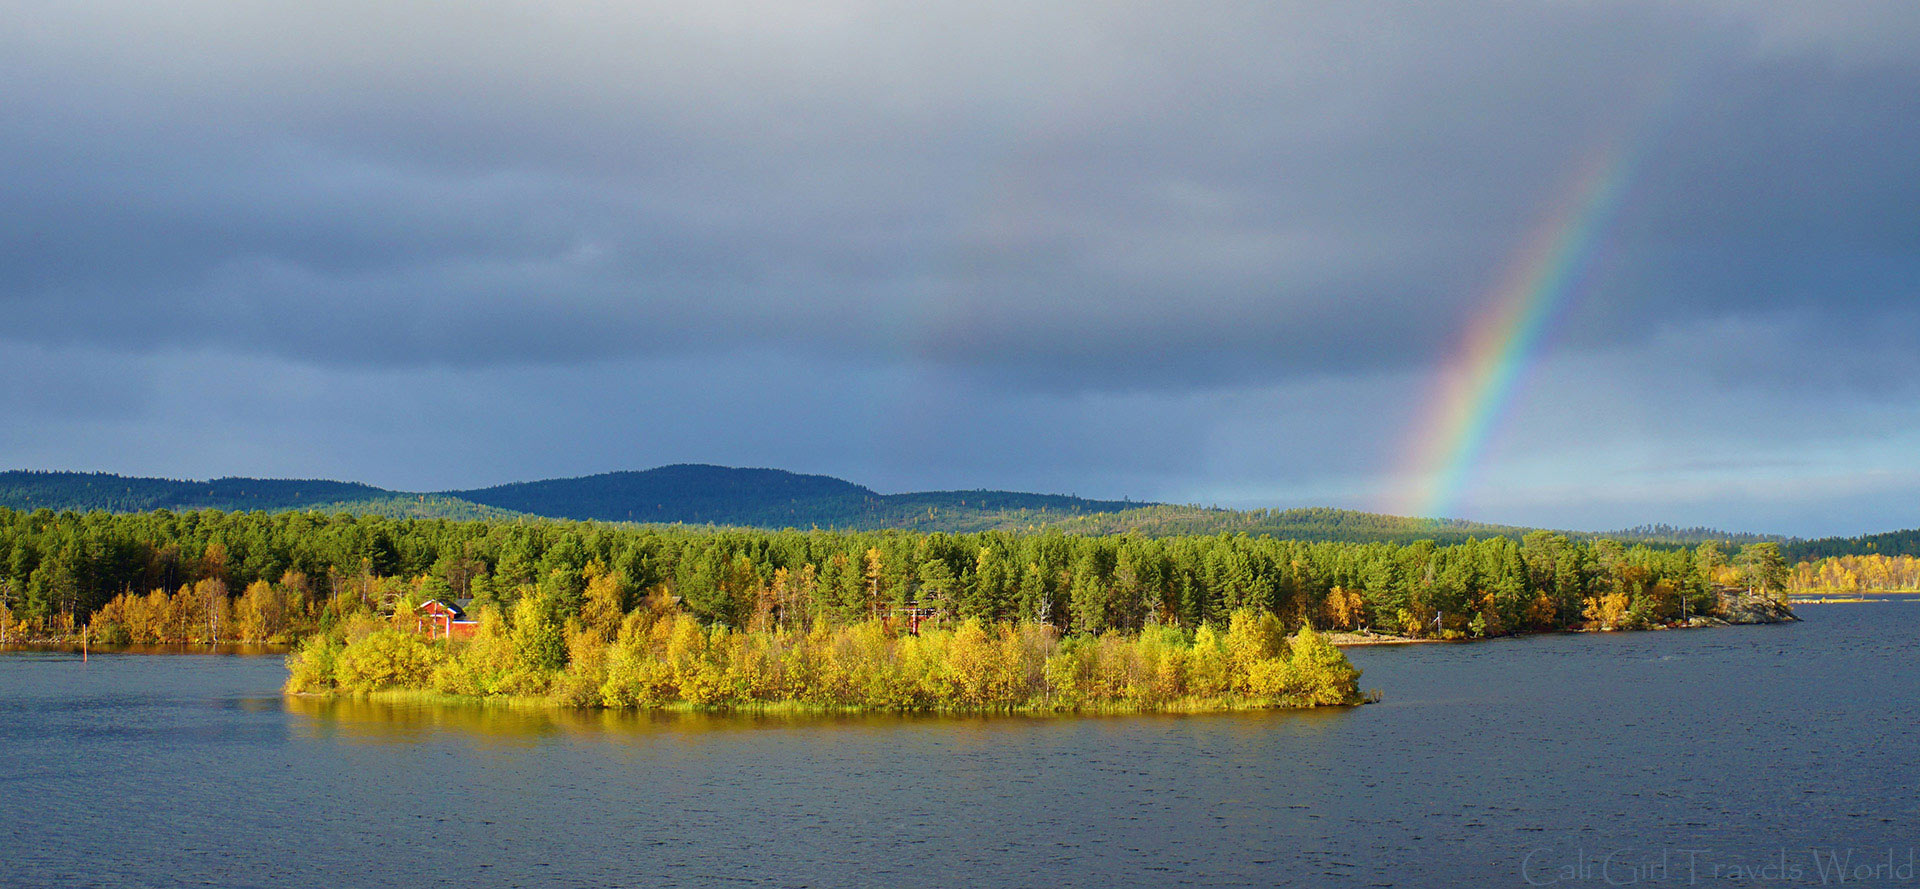 Double rainbow over Lake Inari in Lapland, Finland.